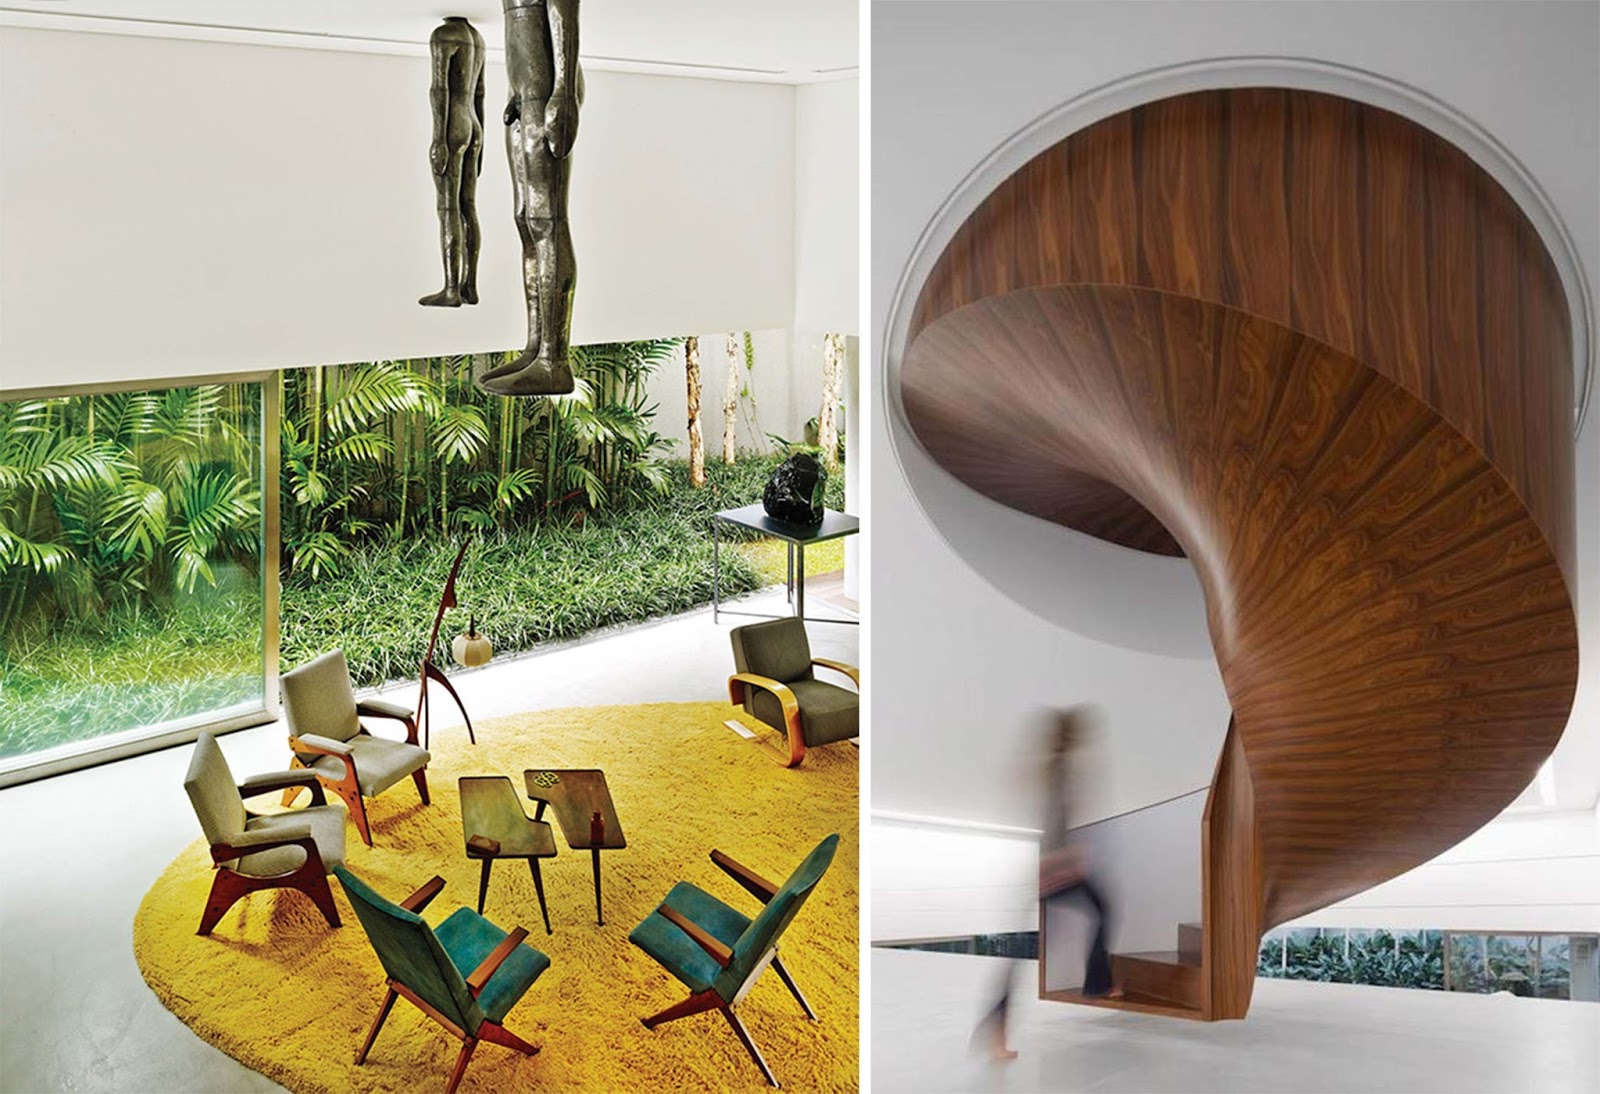 Casa cubo by isay weinfeld s o paulo arc art blog by for Primo piano arredamento